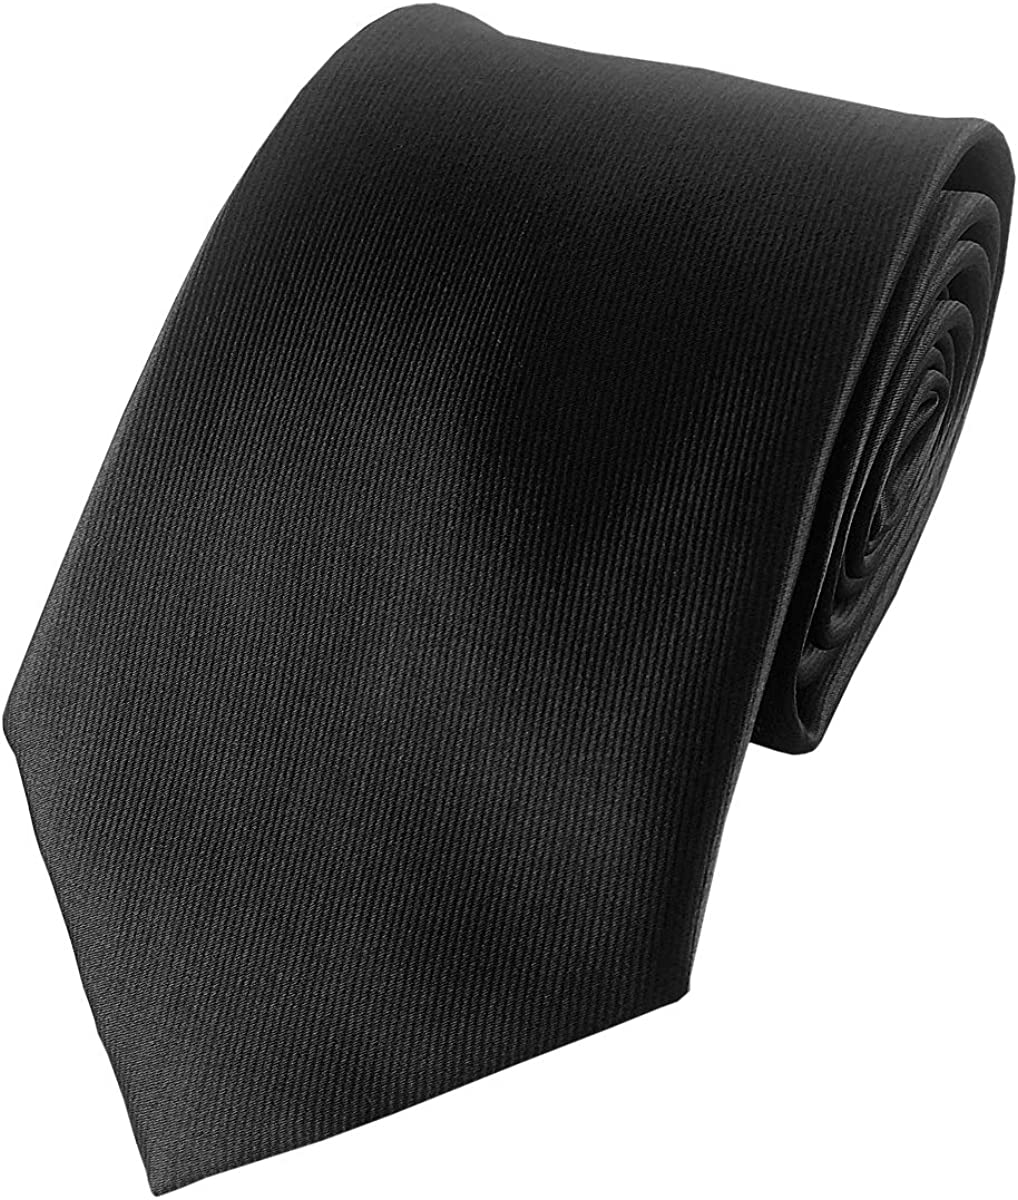 Men's Ties Solid Color Pure Necktie F Plain Many popular Max 54% OFF brands Black Polyester